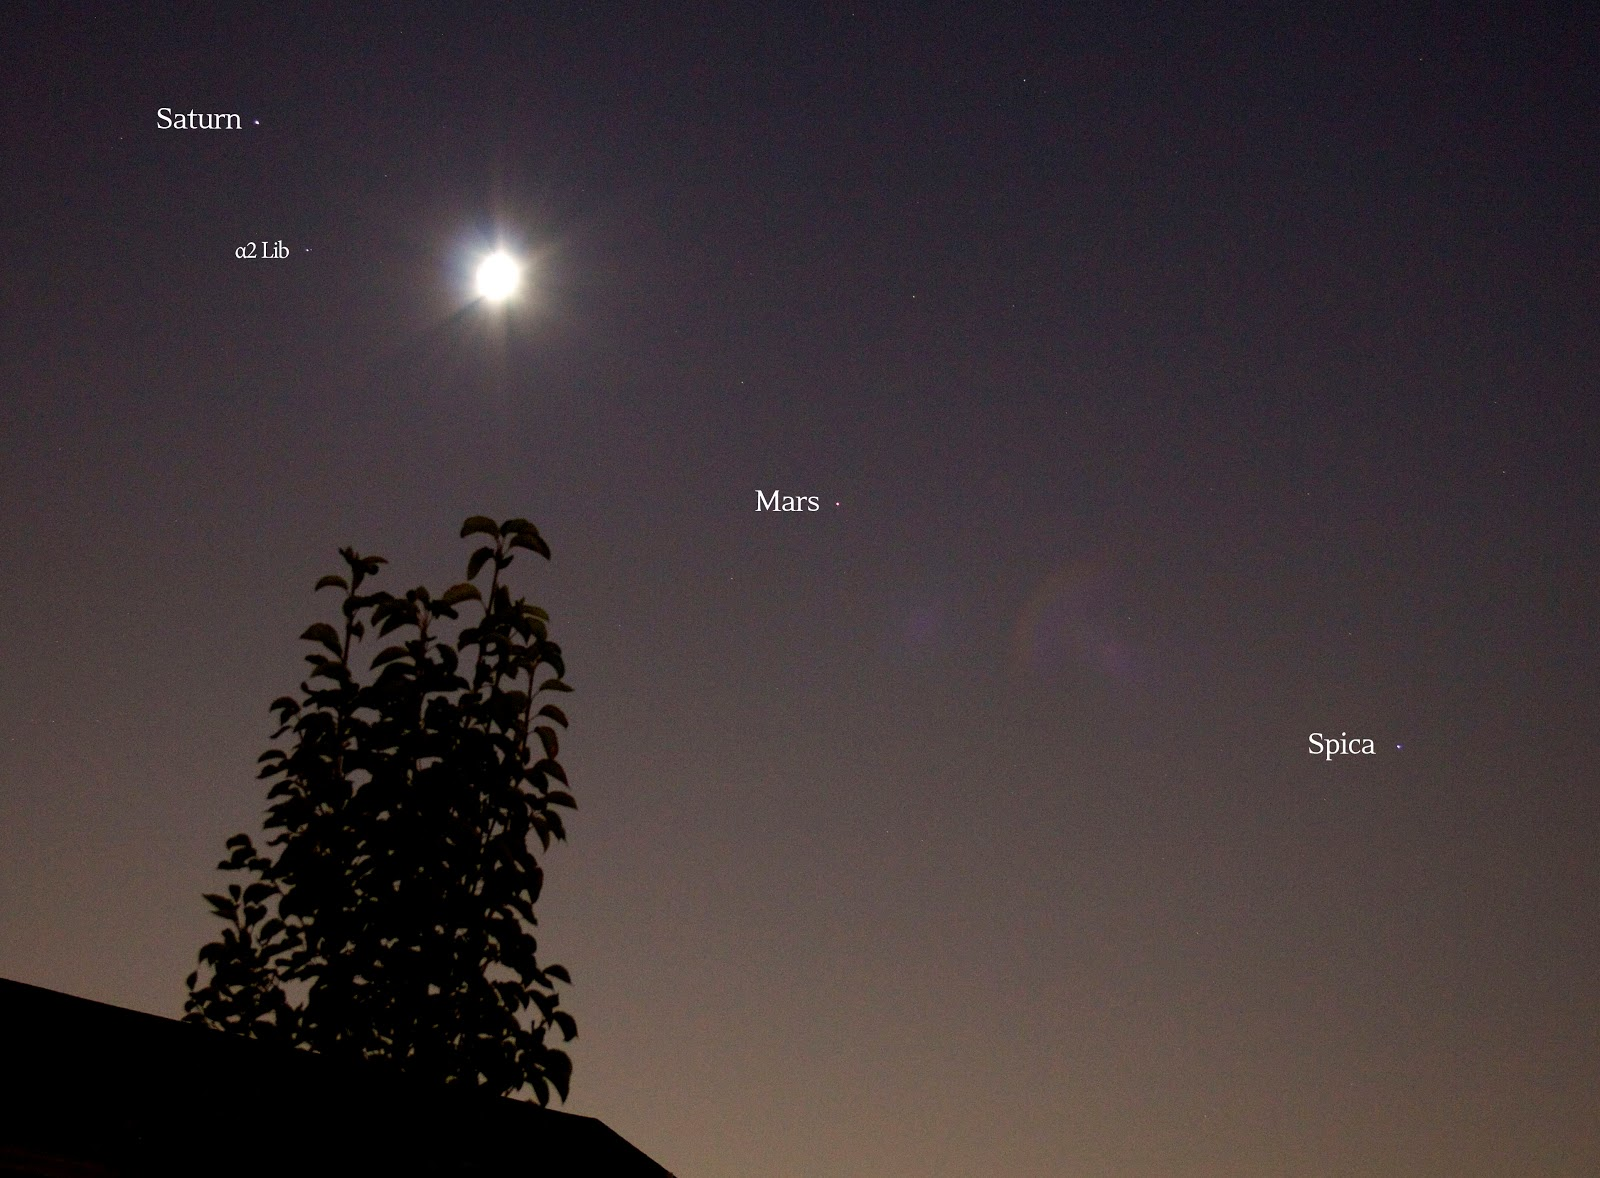 saturn moon mars spica alignment